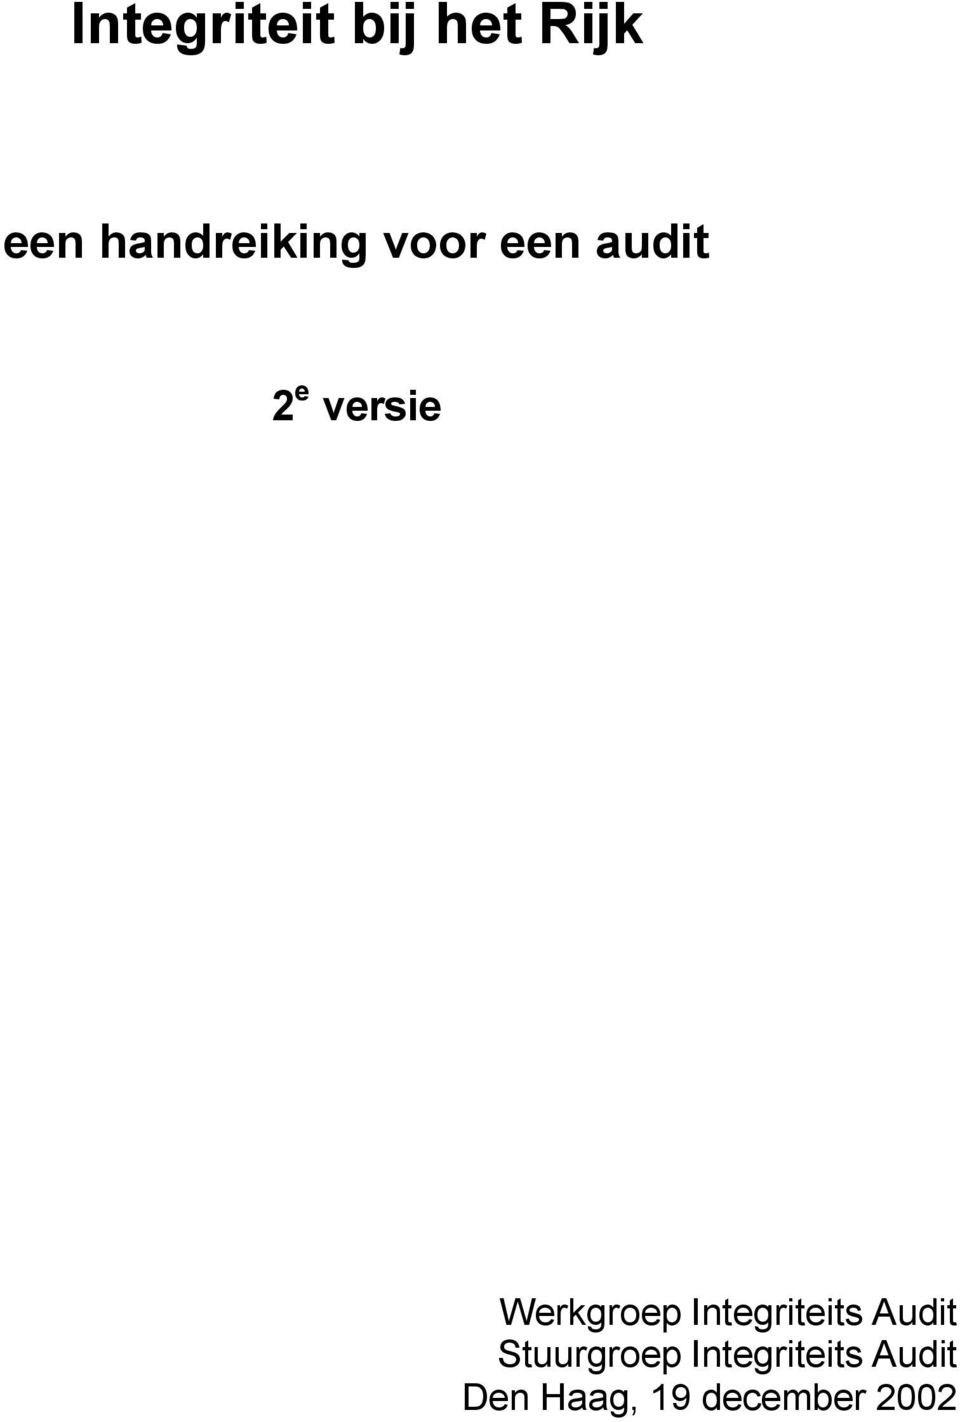 Werkgroep Integriteits Audit